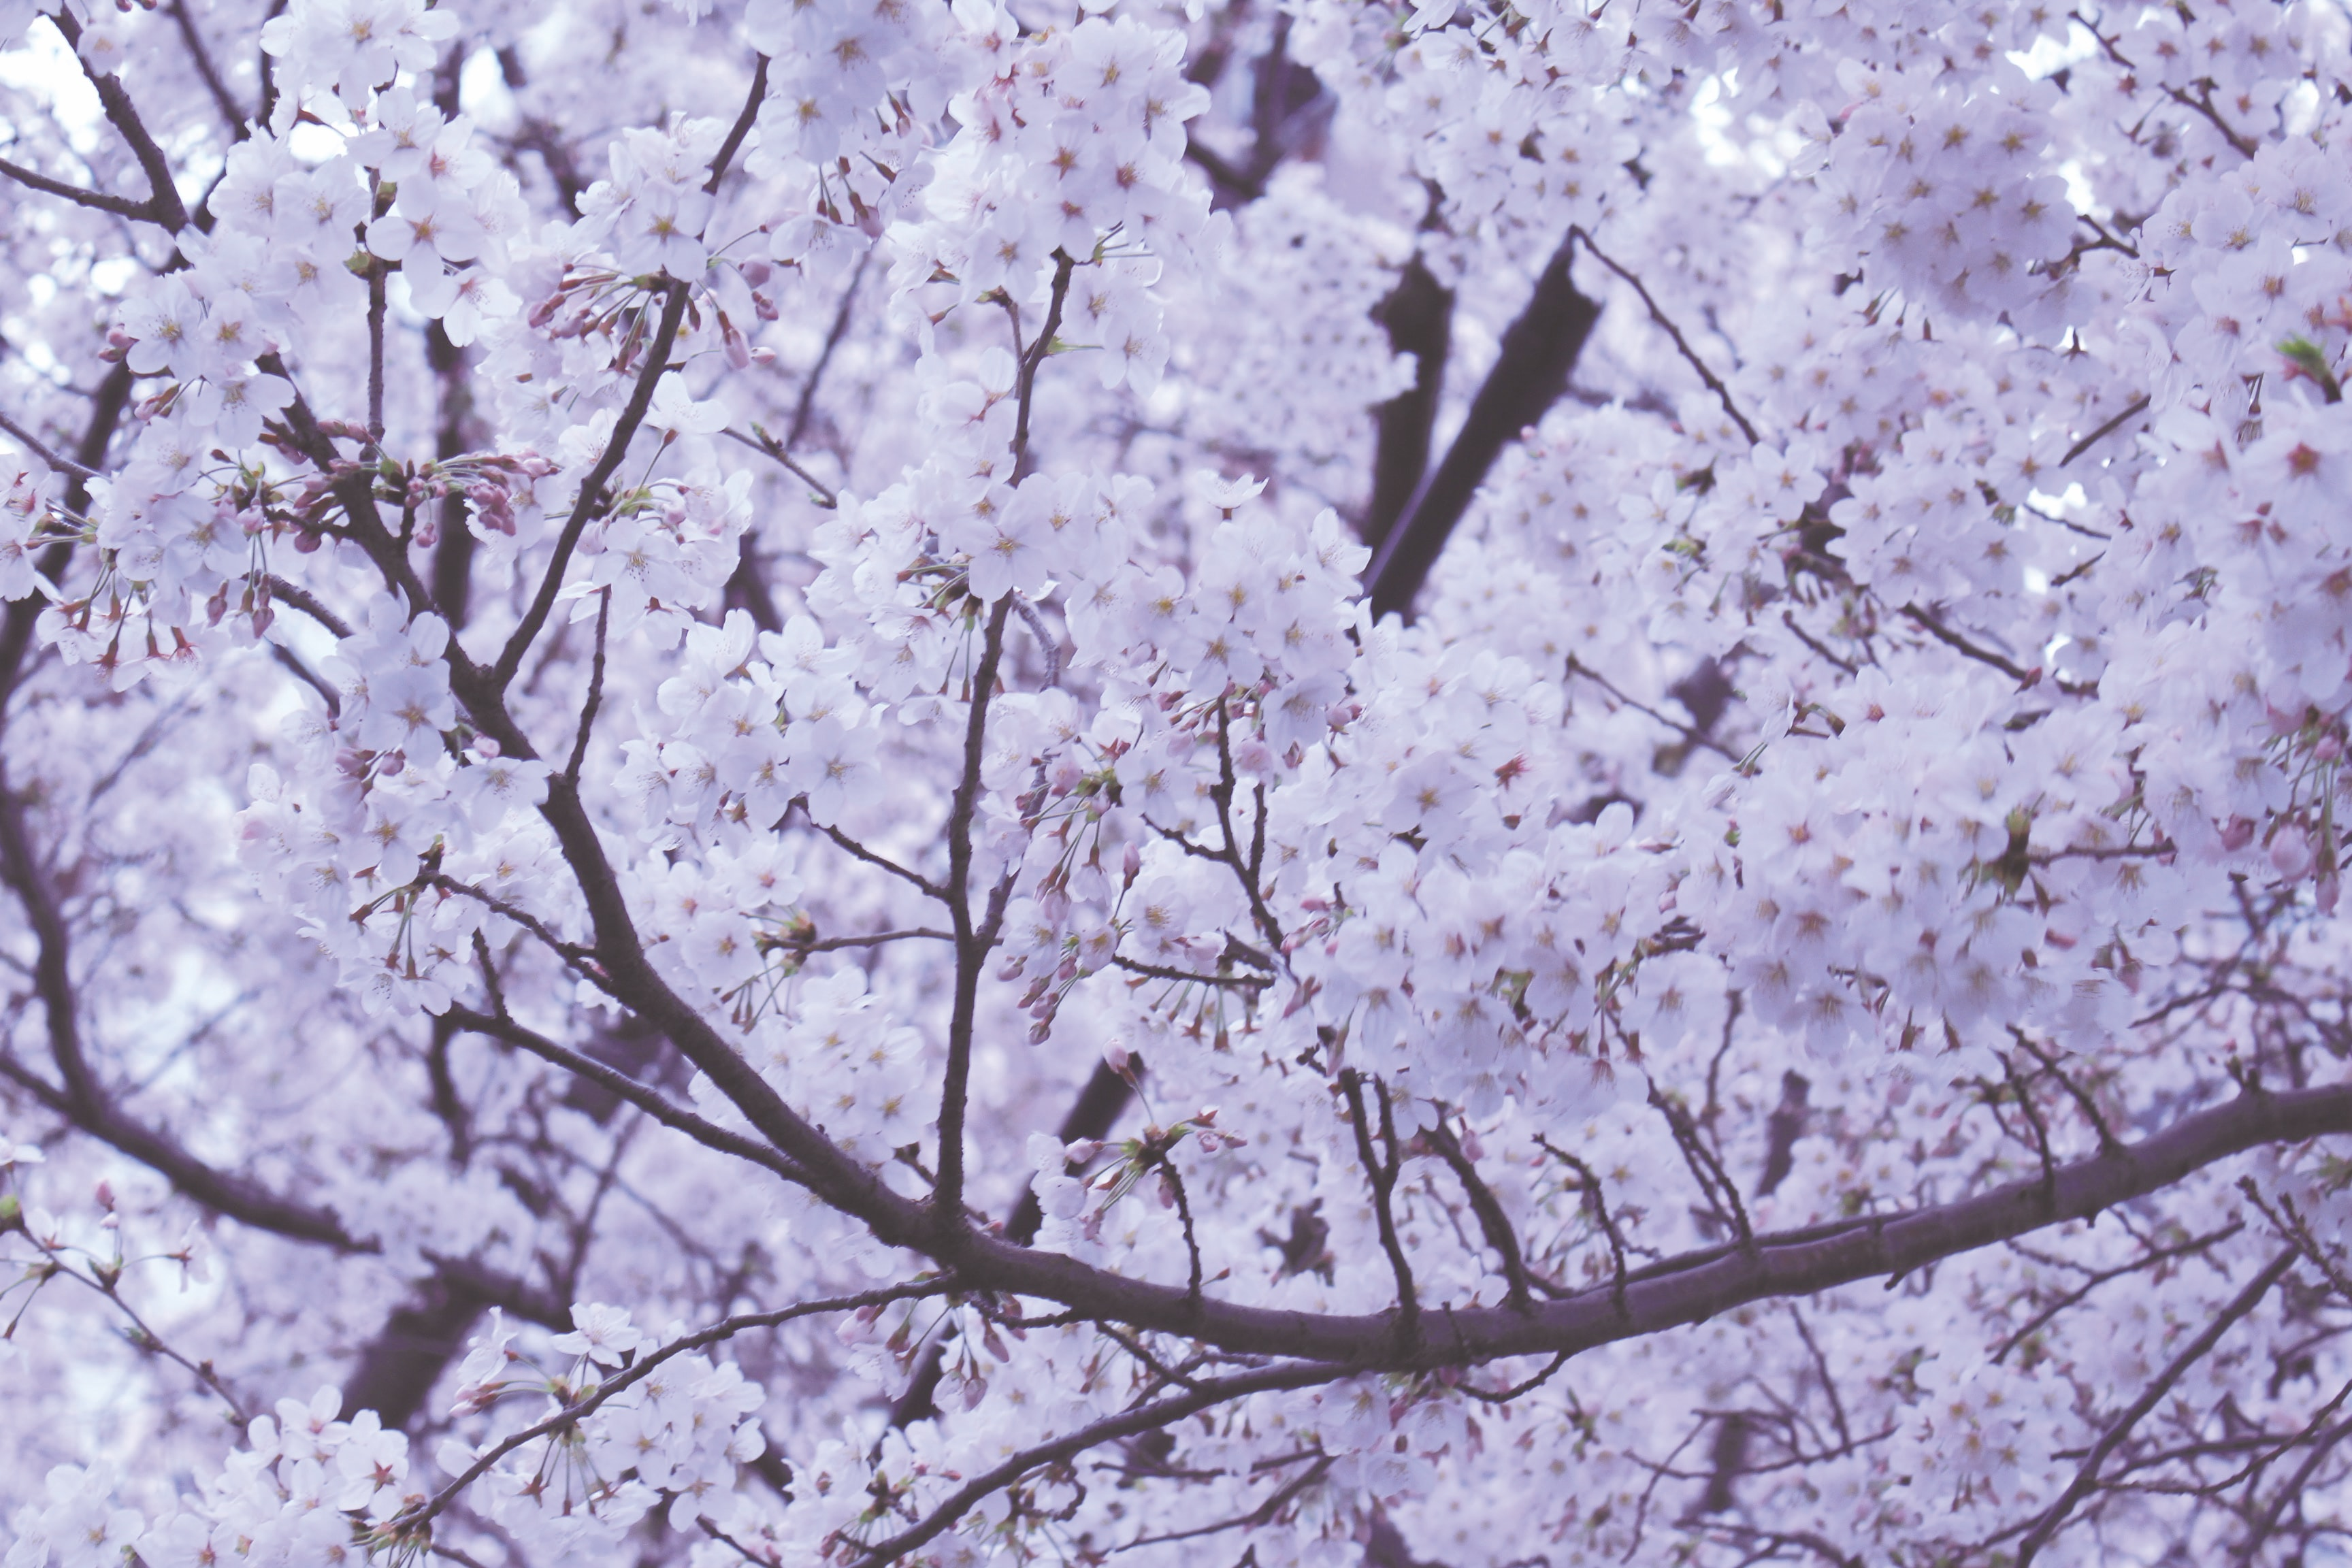 Thick pink white cherry blossom on tree branches in Spring in Japan